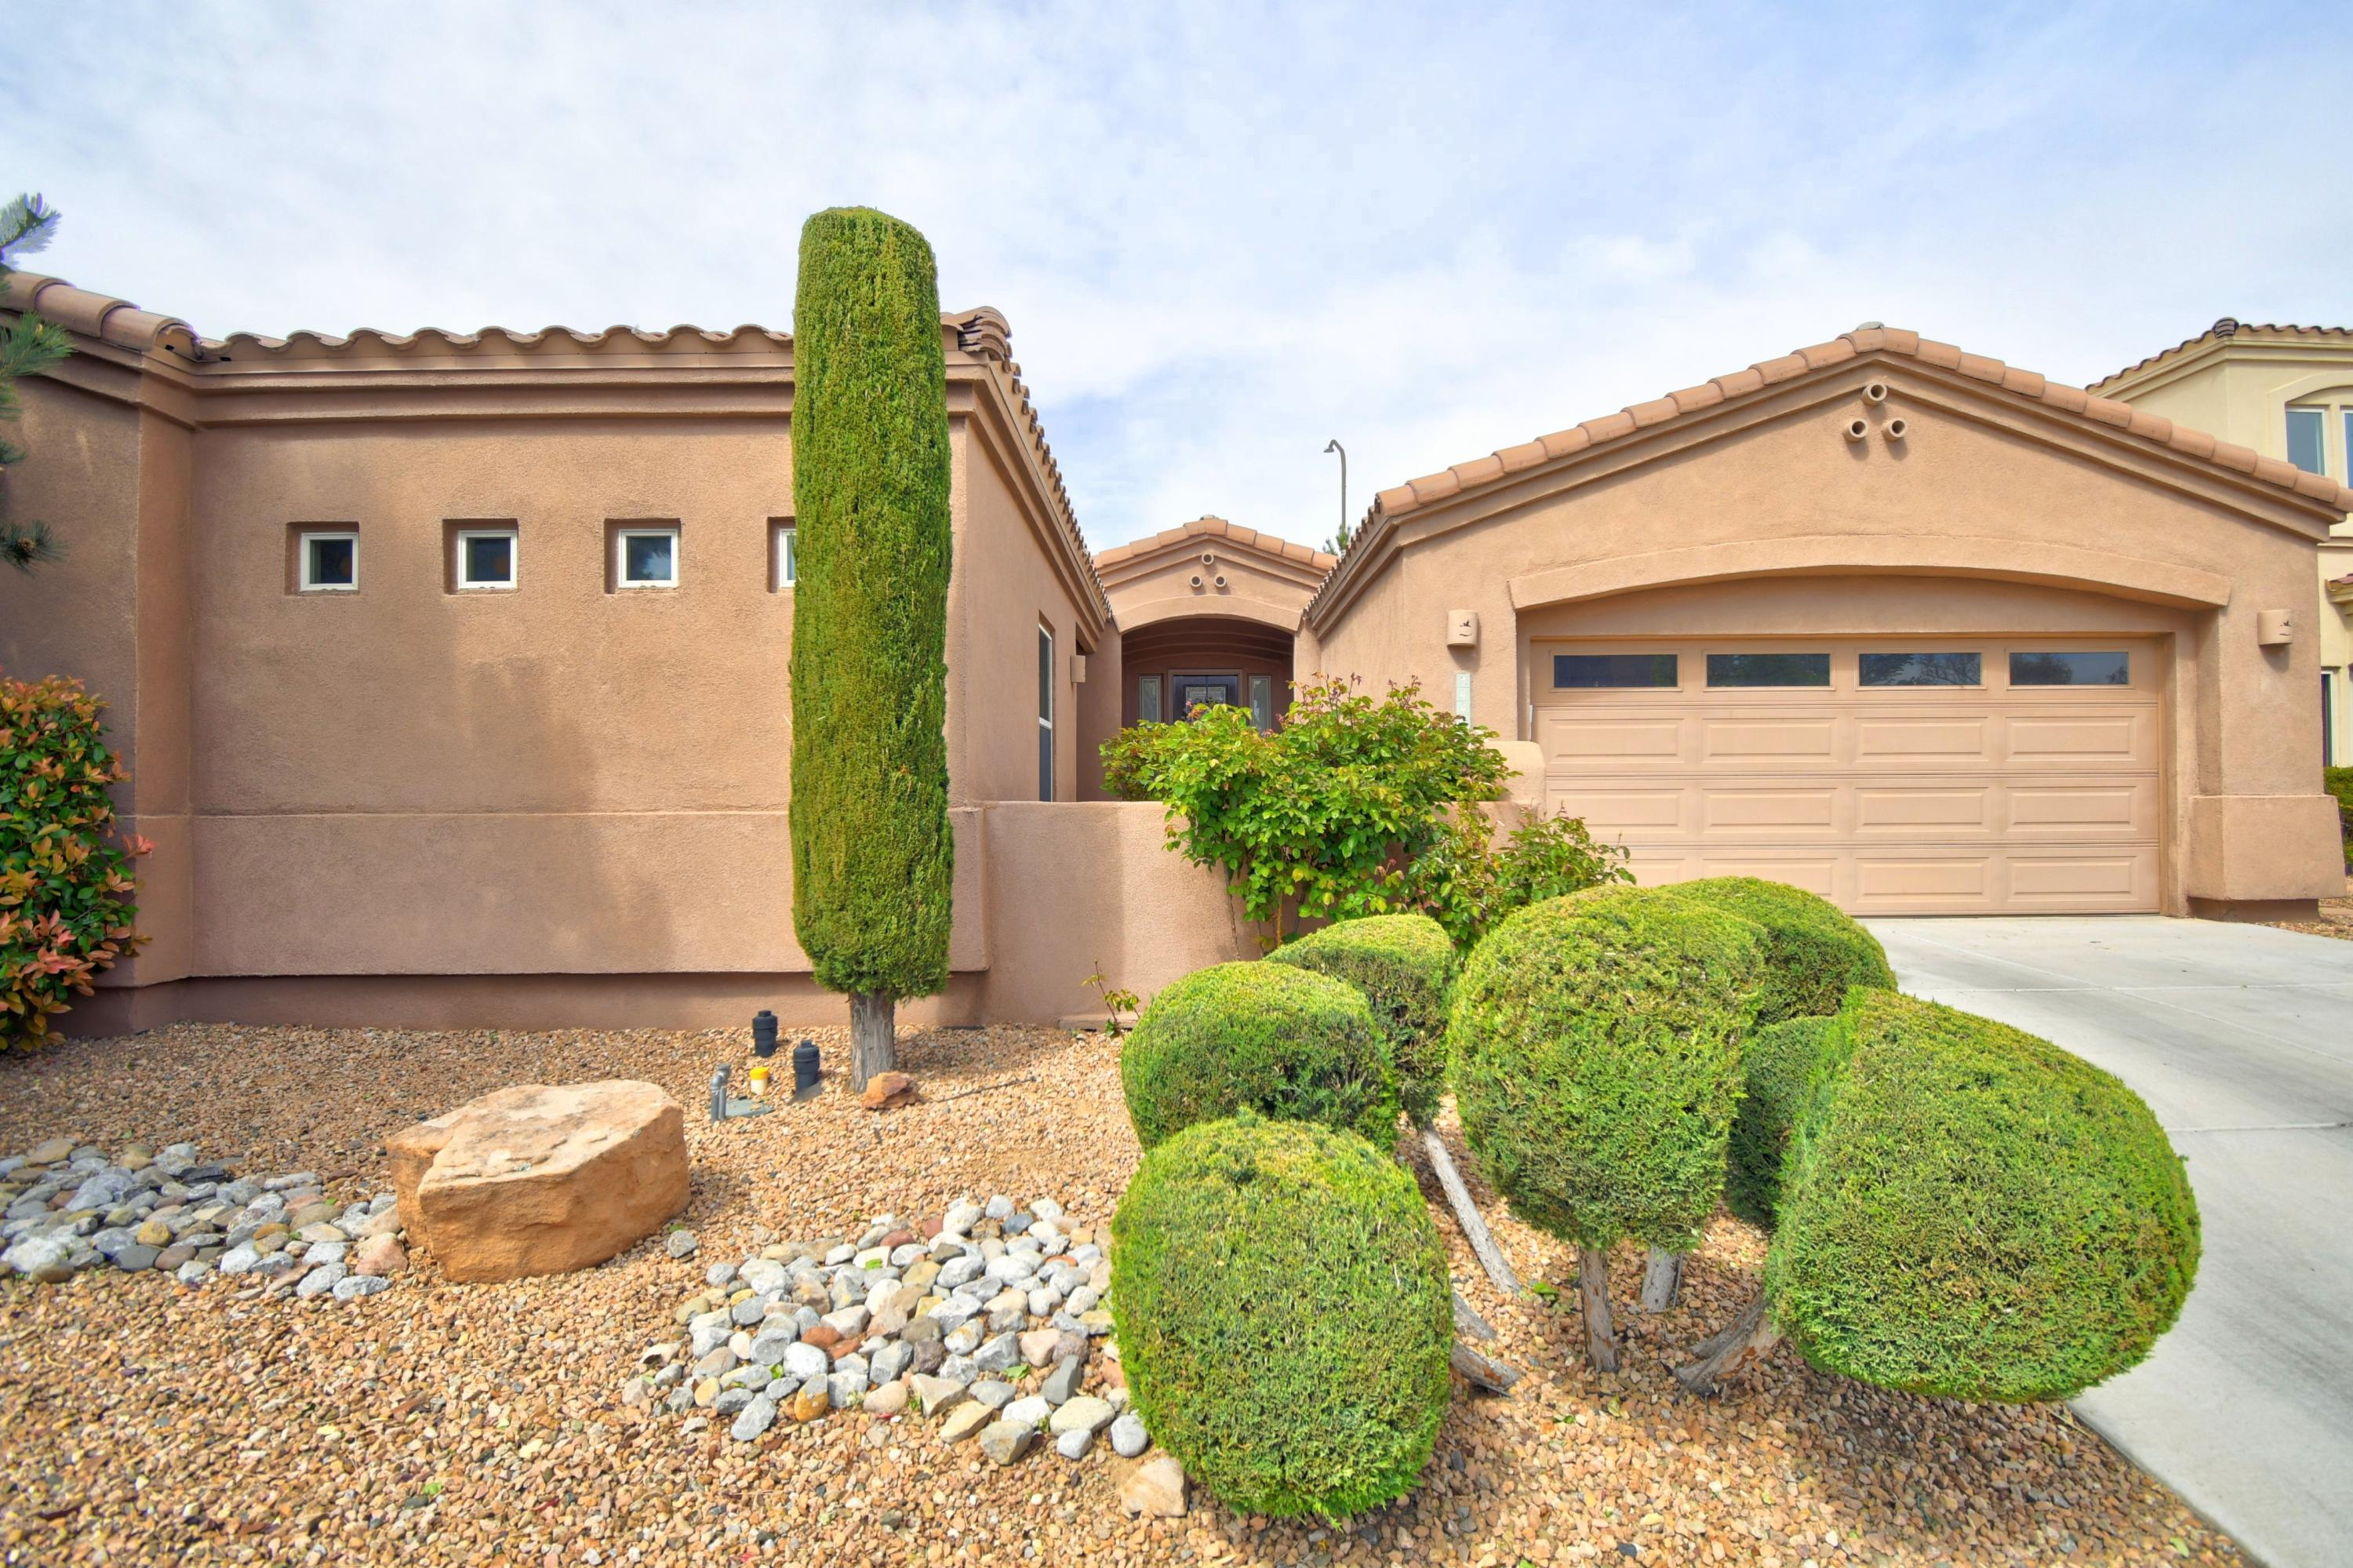 4405 BERESFORD Lane NW, Albuquerque, NM 87120 - Albuquerque, NM real estate listing